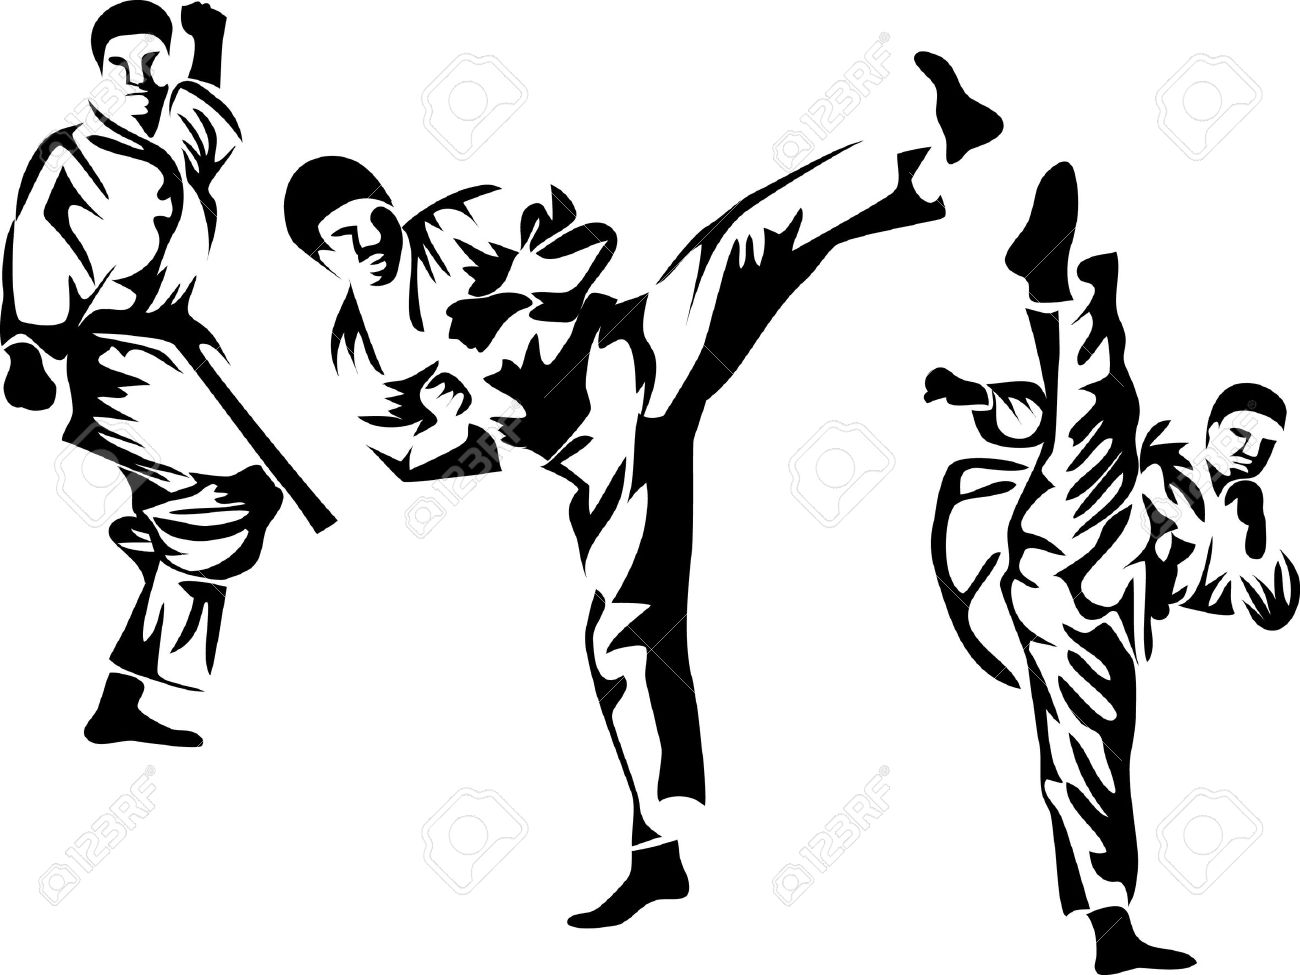 karate pose logo royalty free cliparts vectors and stock rh 123rf com karate logo png karate logo pictures